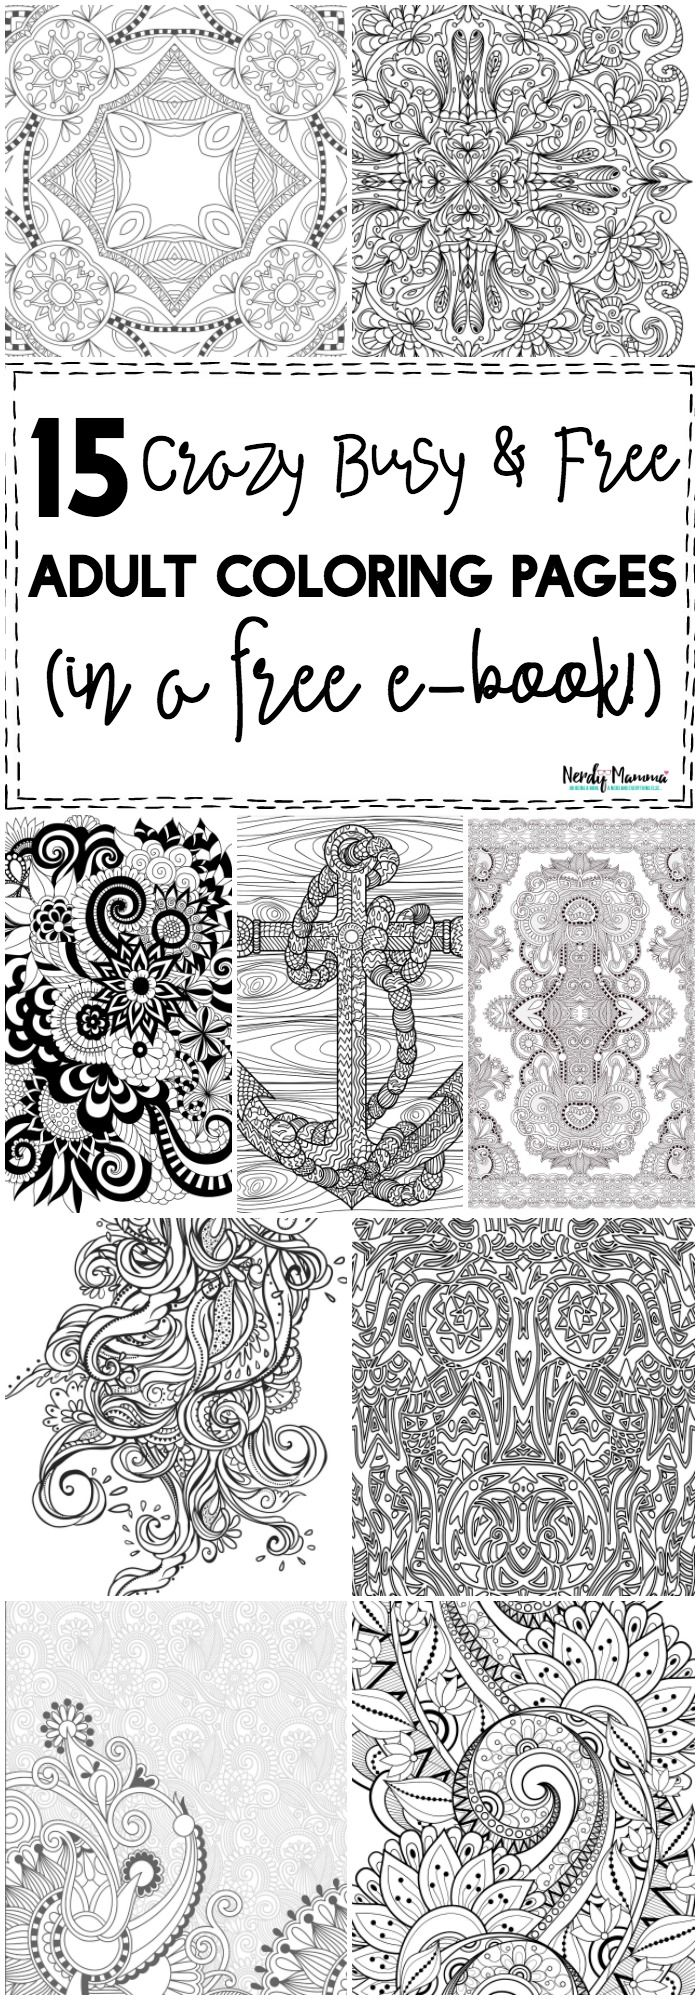 15 CRAZY Busy Coloring Pages For Adults